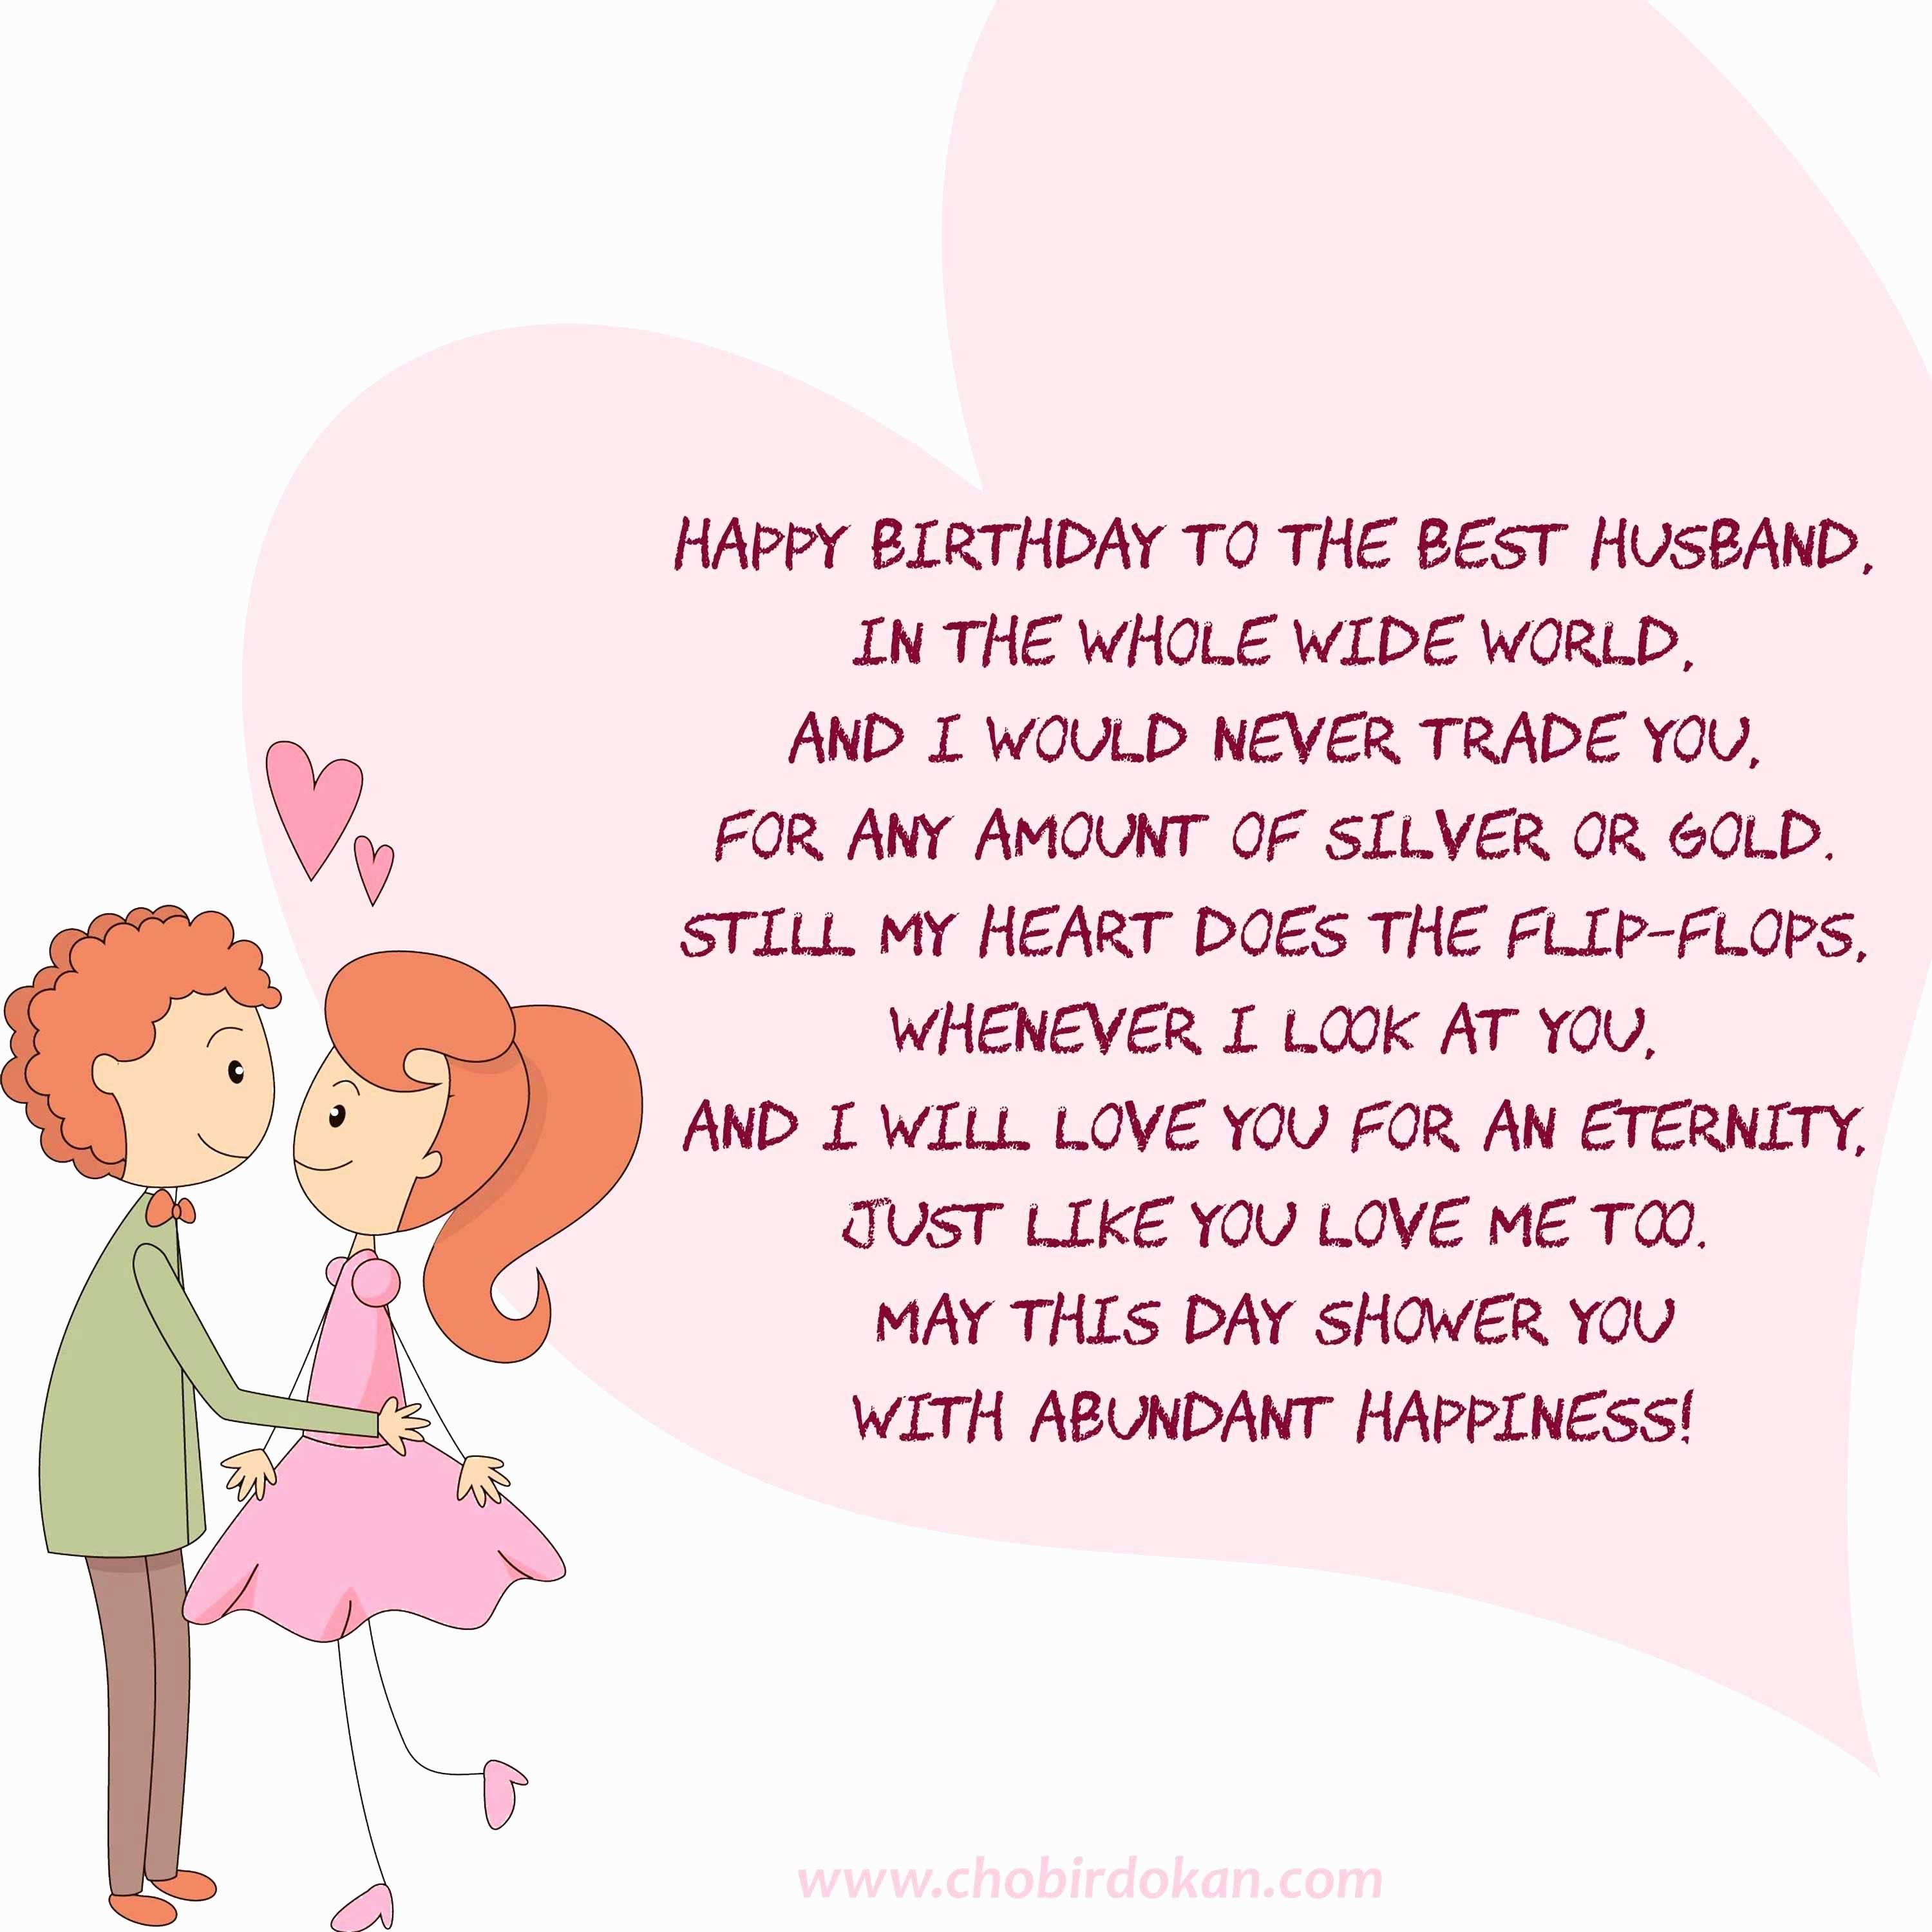 birthday wish ideas for him ; boyfriend-birthday-wishes-luxury-are-you-looking-for-some-cute-happy-birthday-poems-for-him-wishing-of-boyfriend-birthday-wishes